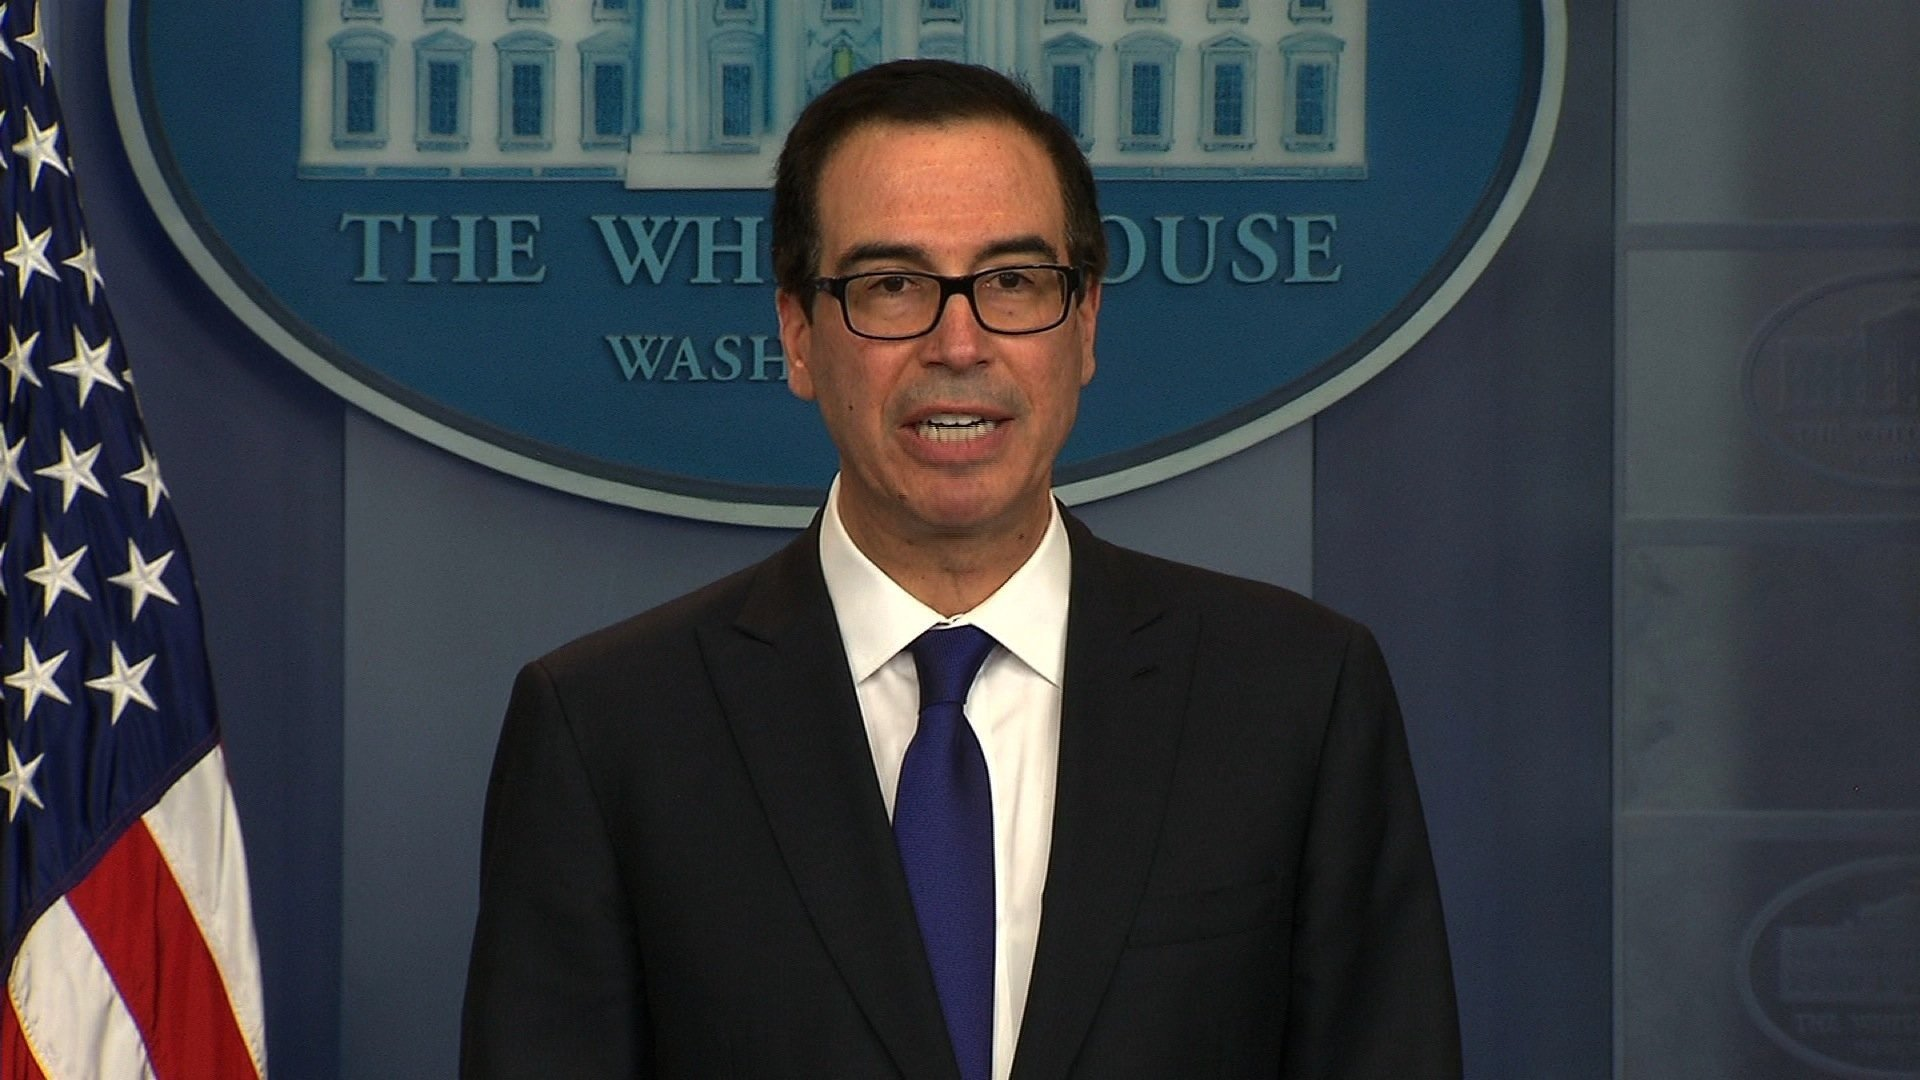 Mnuchin: I had no interest in eclipse because 'I'm a New Yorker'